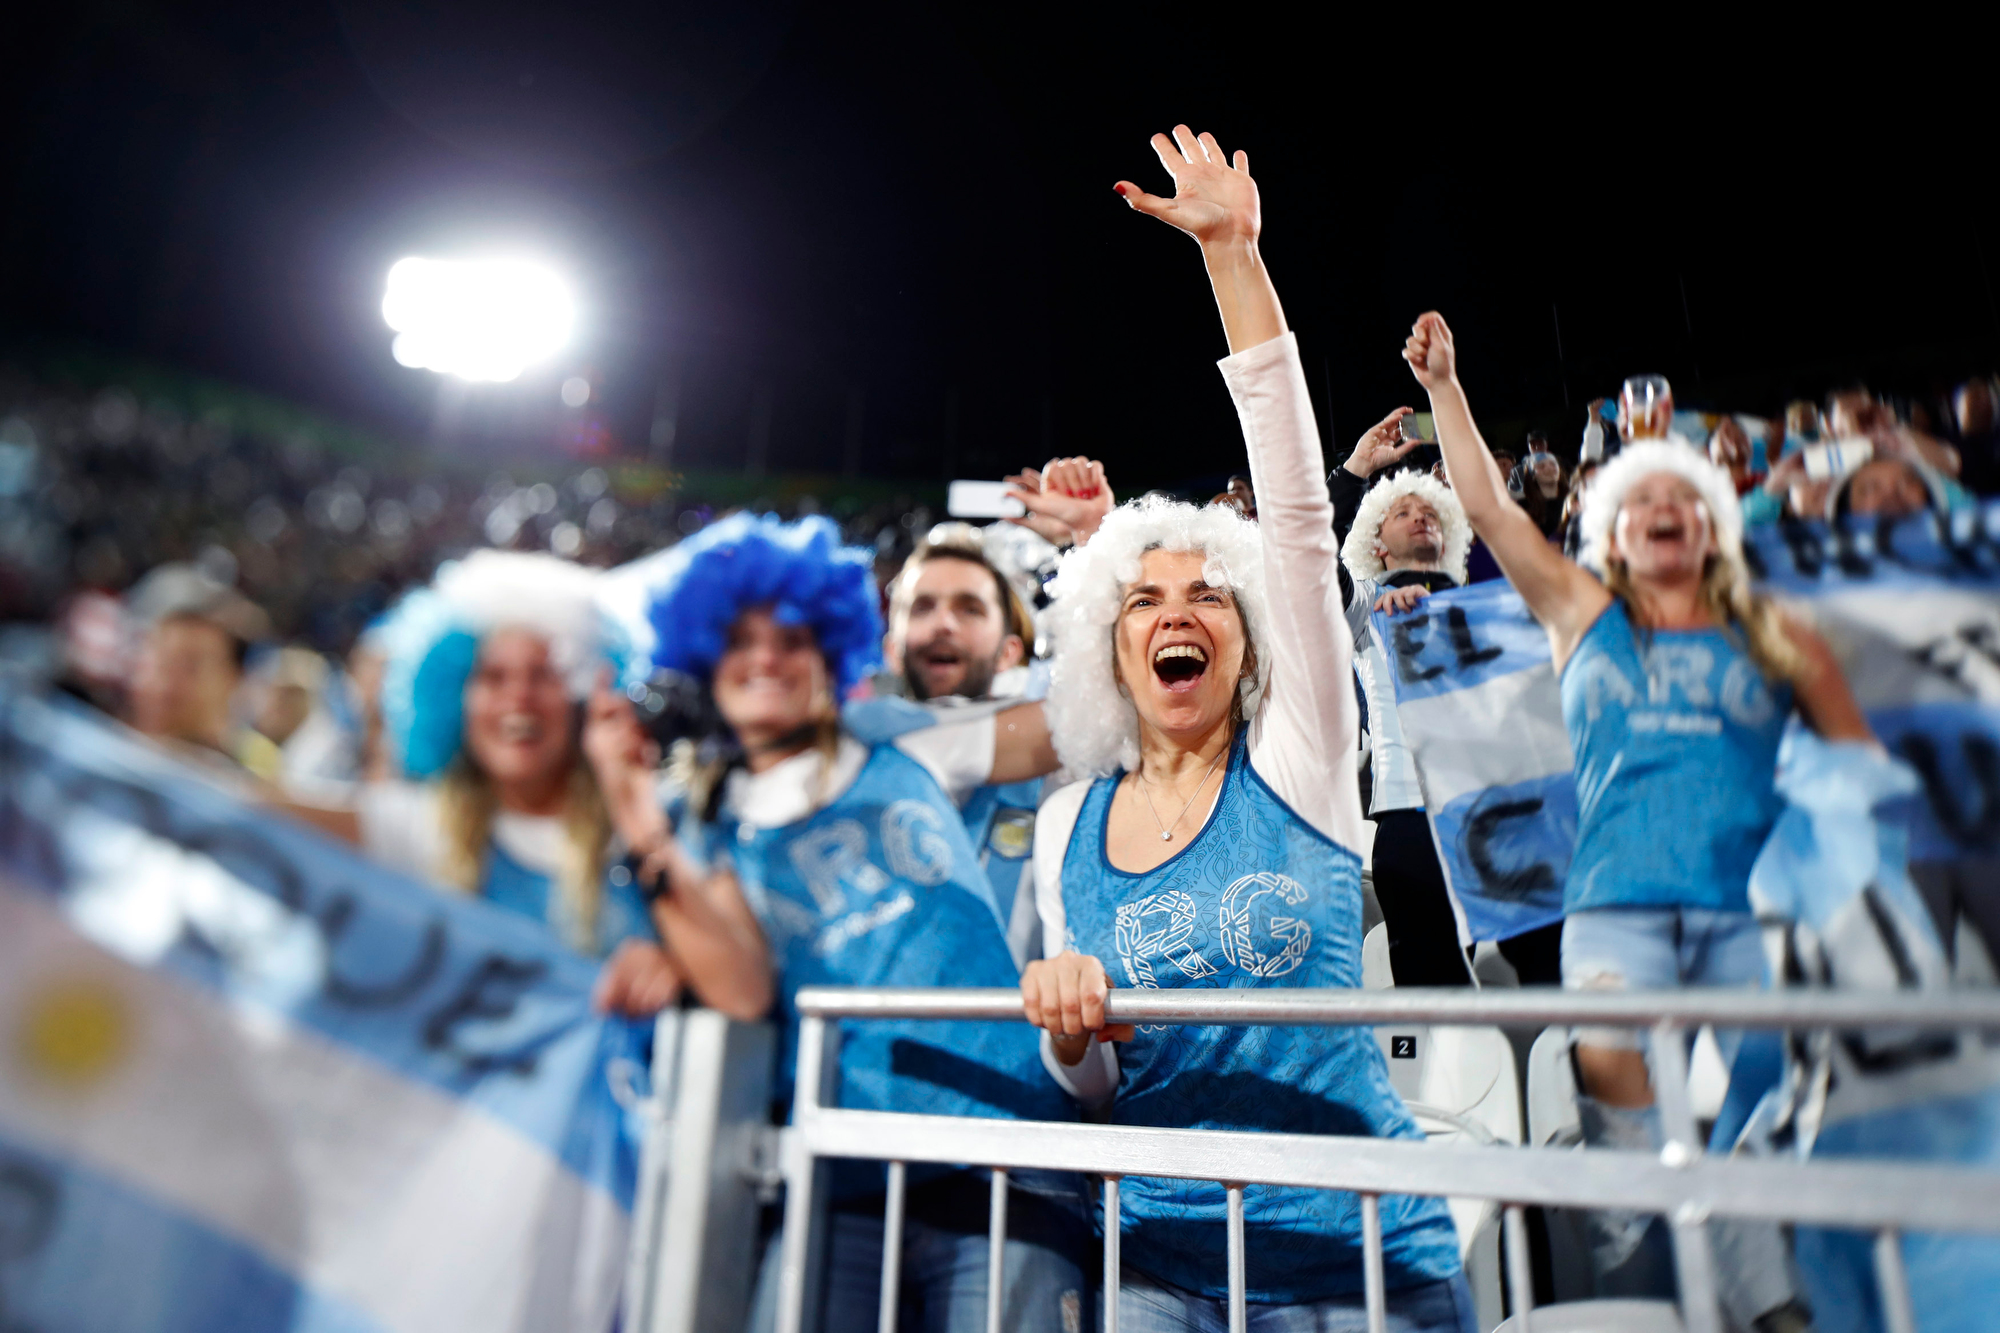 Argentina fans cheer for their team before taking on the Czech Republic in a Women's Beach Volleyball preliminary match at the 2016 Rio Summer Olympics on Copacabana Beach in Rio de Janeiro, Brazil, on August 10, 2016.